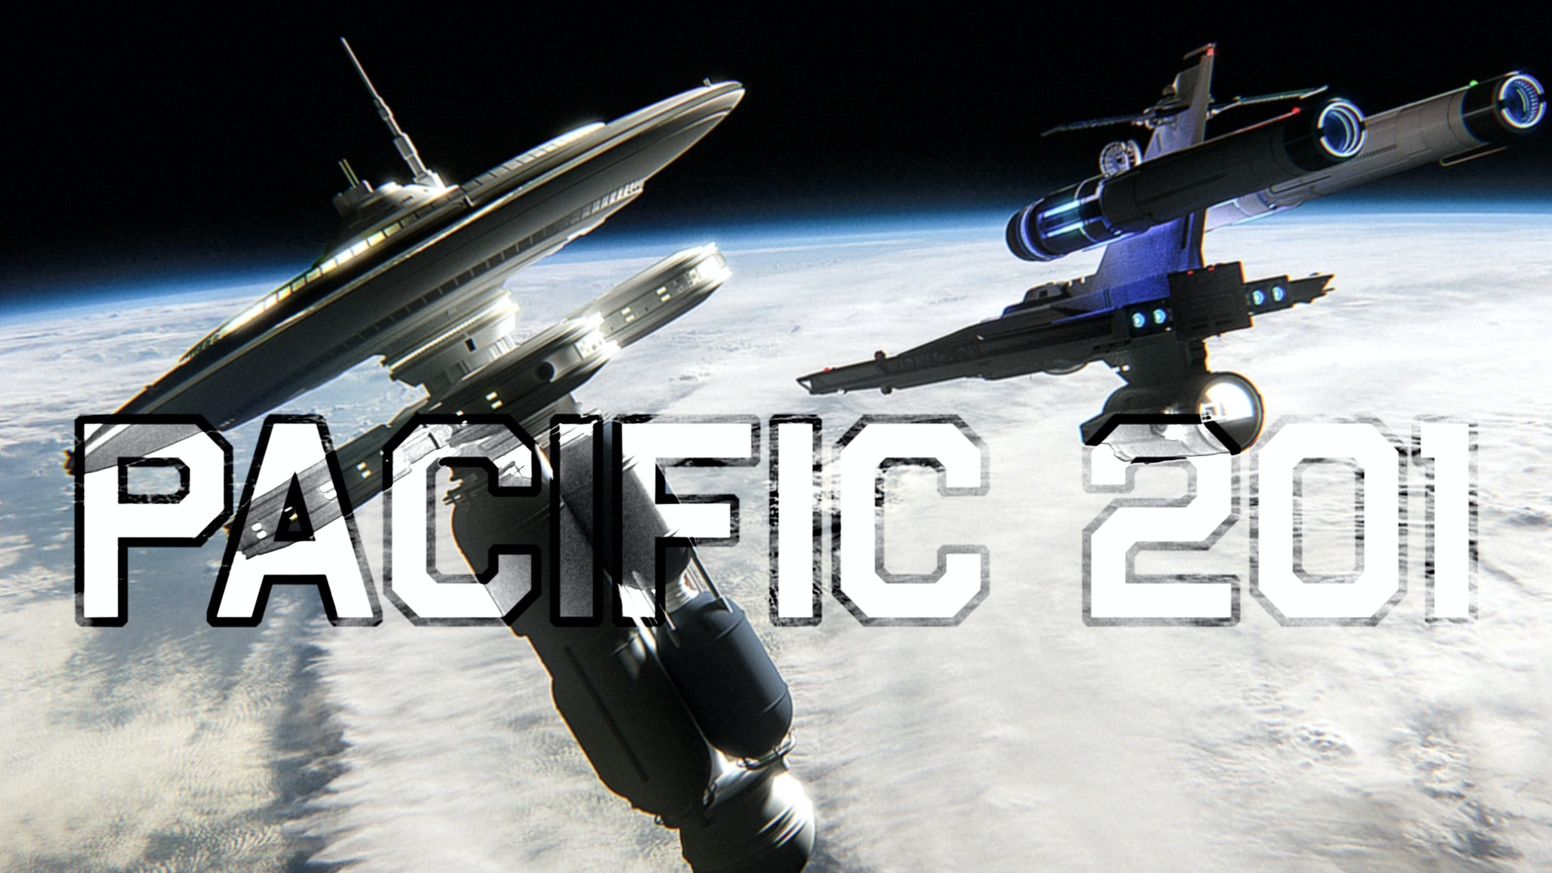 Pacific 201 is a non-profit, fan-made project inspired by the positive future of wonder and exploration established by Star Trek.